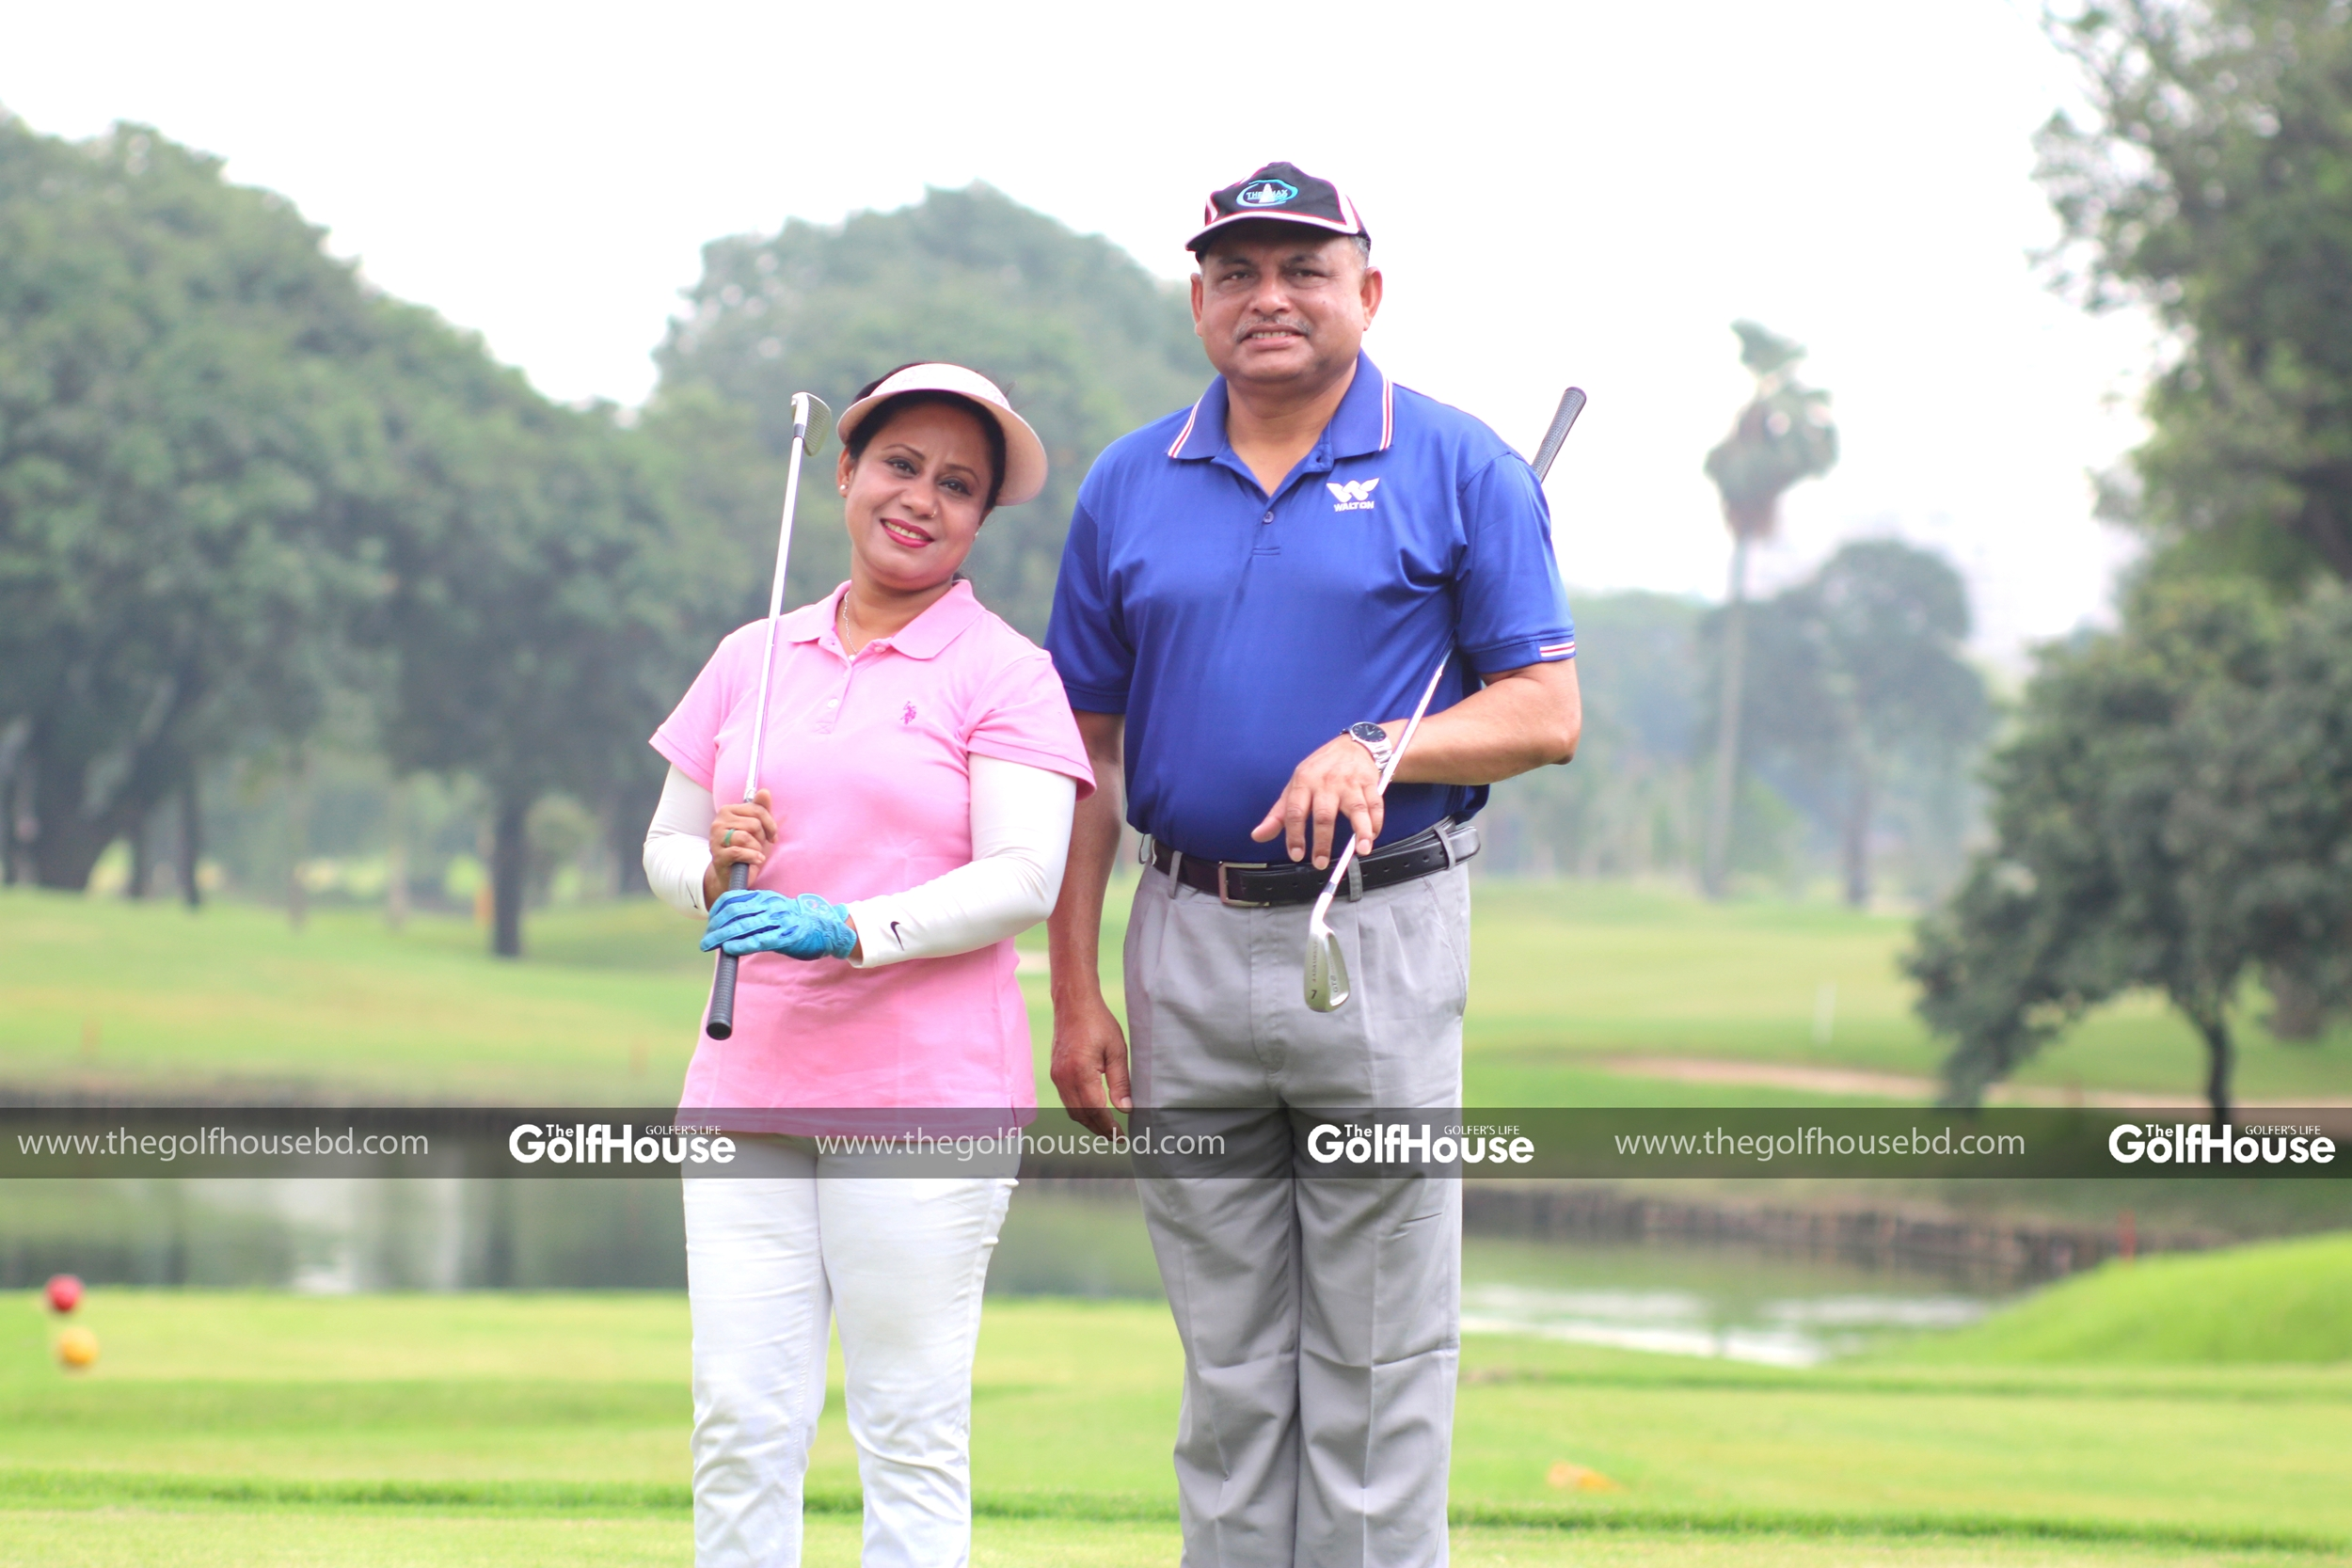 Mr._Azizul_Islam_is_a_doctor_at_Bangladesh_Army_while_his_wife_Neela_Aziz_is_a_lawyer_Although_they_are_from_two_very_different_professions_and_stay_busy_throughout_the_day_with_their_work_golf_brings_them_together_in_the_afternoon.